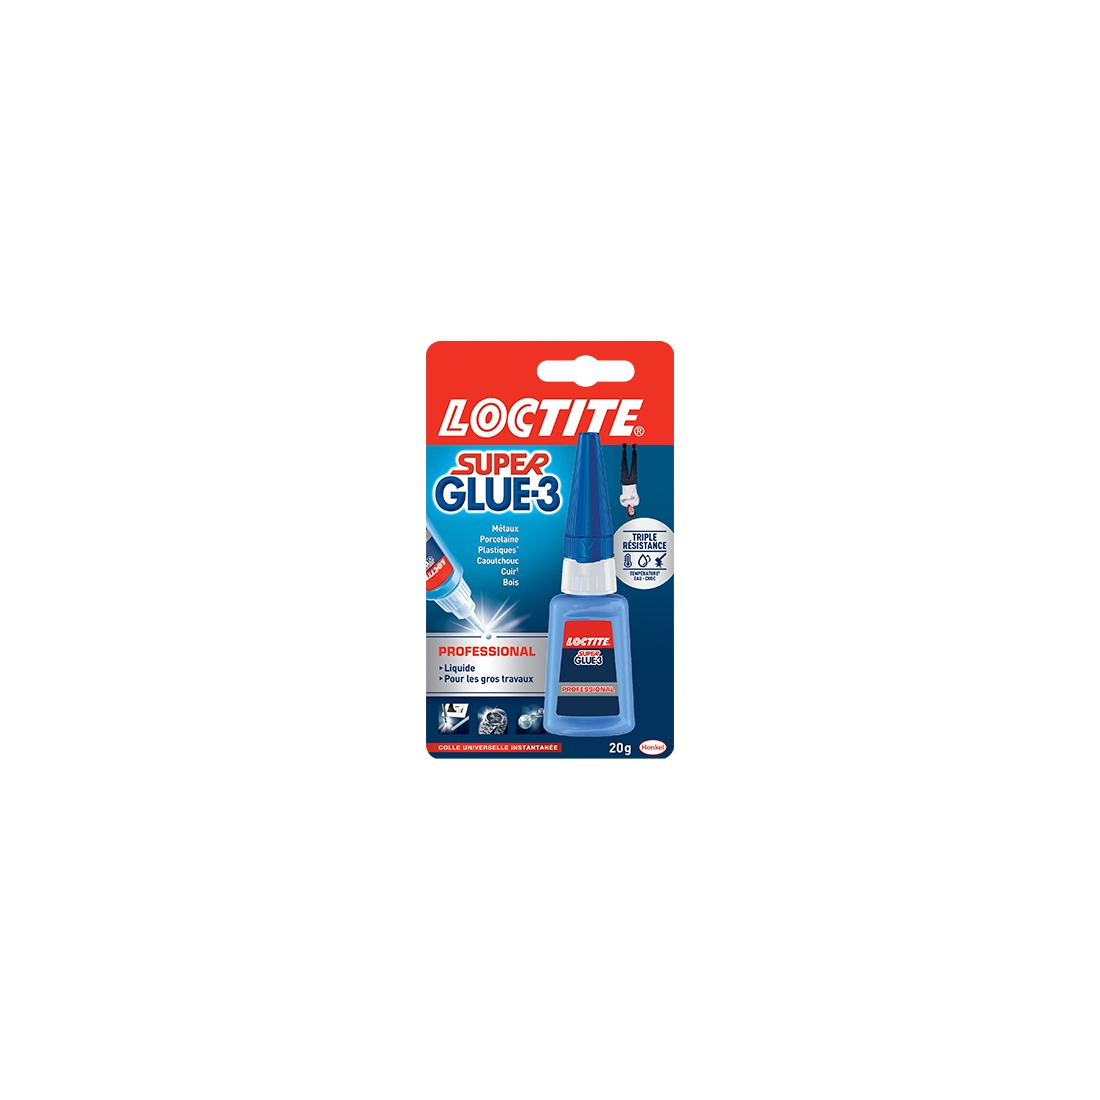 Colle Liquide Super Glue-3 Professionnel